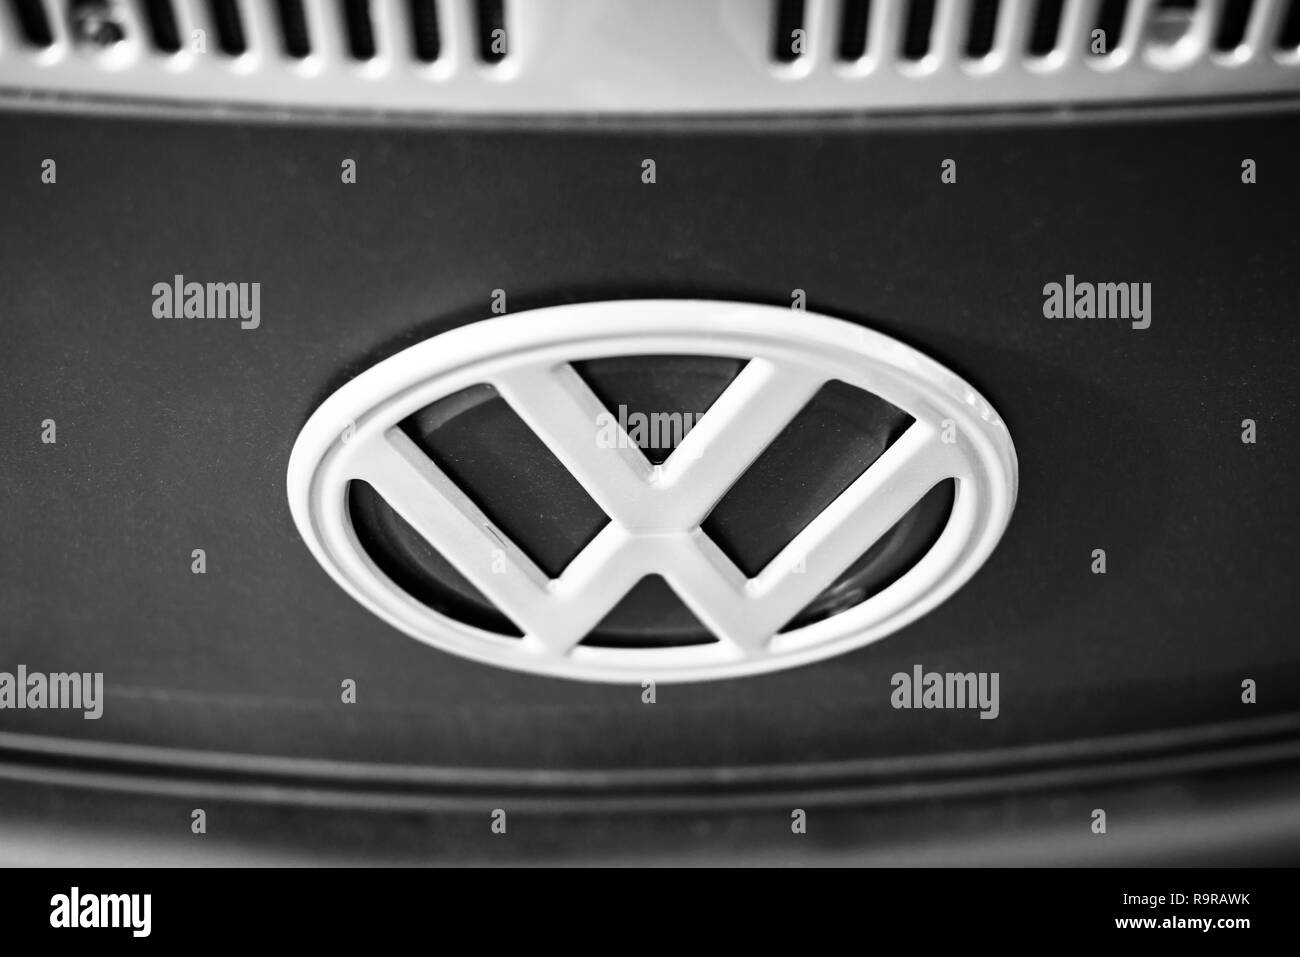 A Volkswagen VW badge on the front of a campervan. - Stock Image